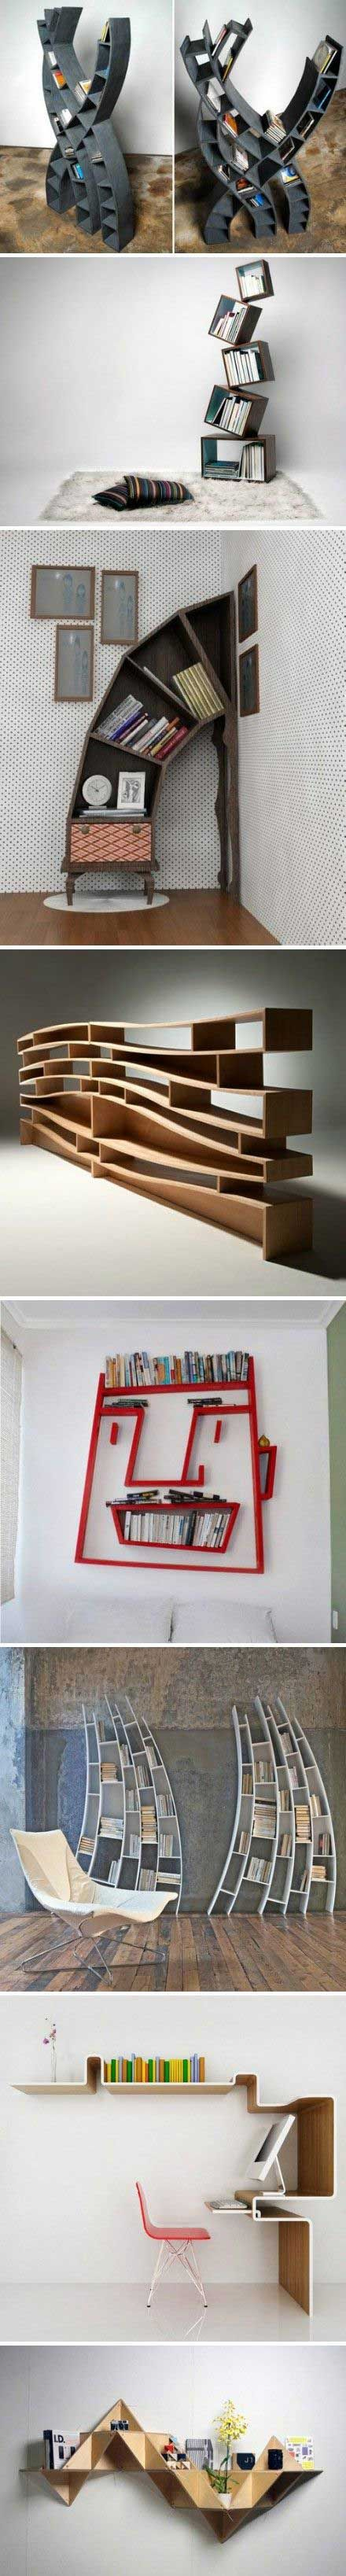 Unique DIY Book Shelves Ideas - All Natural & Good: